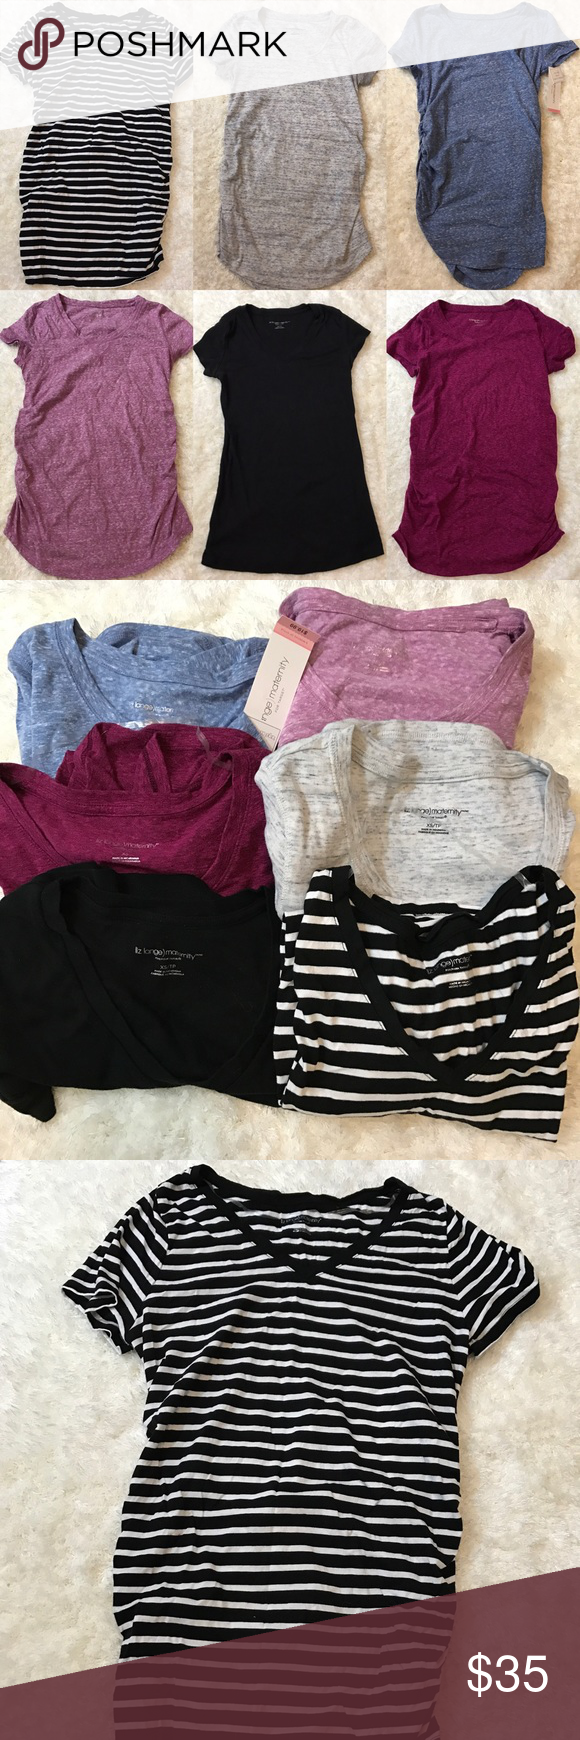 65412bab11609 Lot 6 Liz Lange Maternity short sleeve shirt XS 6 Liz Lange Maternity shirts.  5 are XS 1 is small (the black and white striped) 1 is brand new with tags  ...